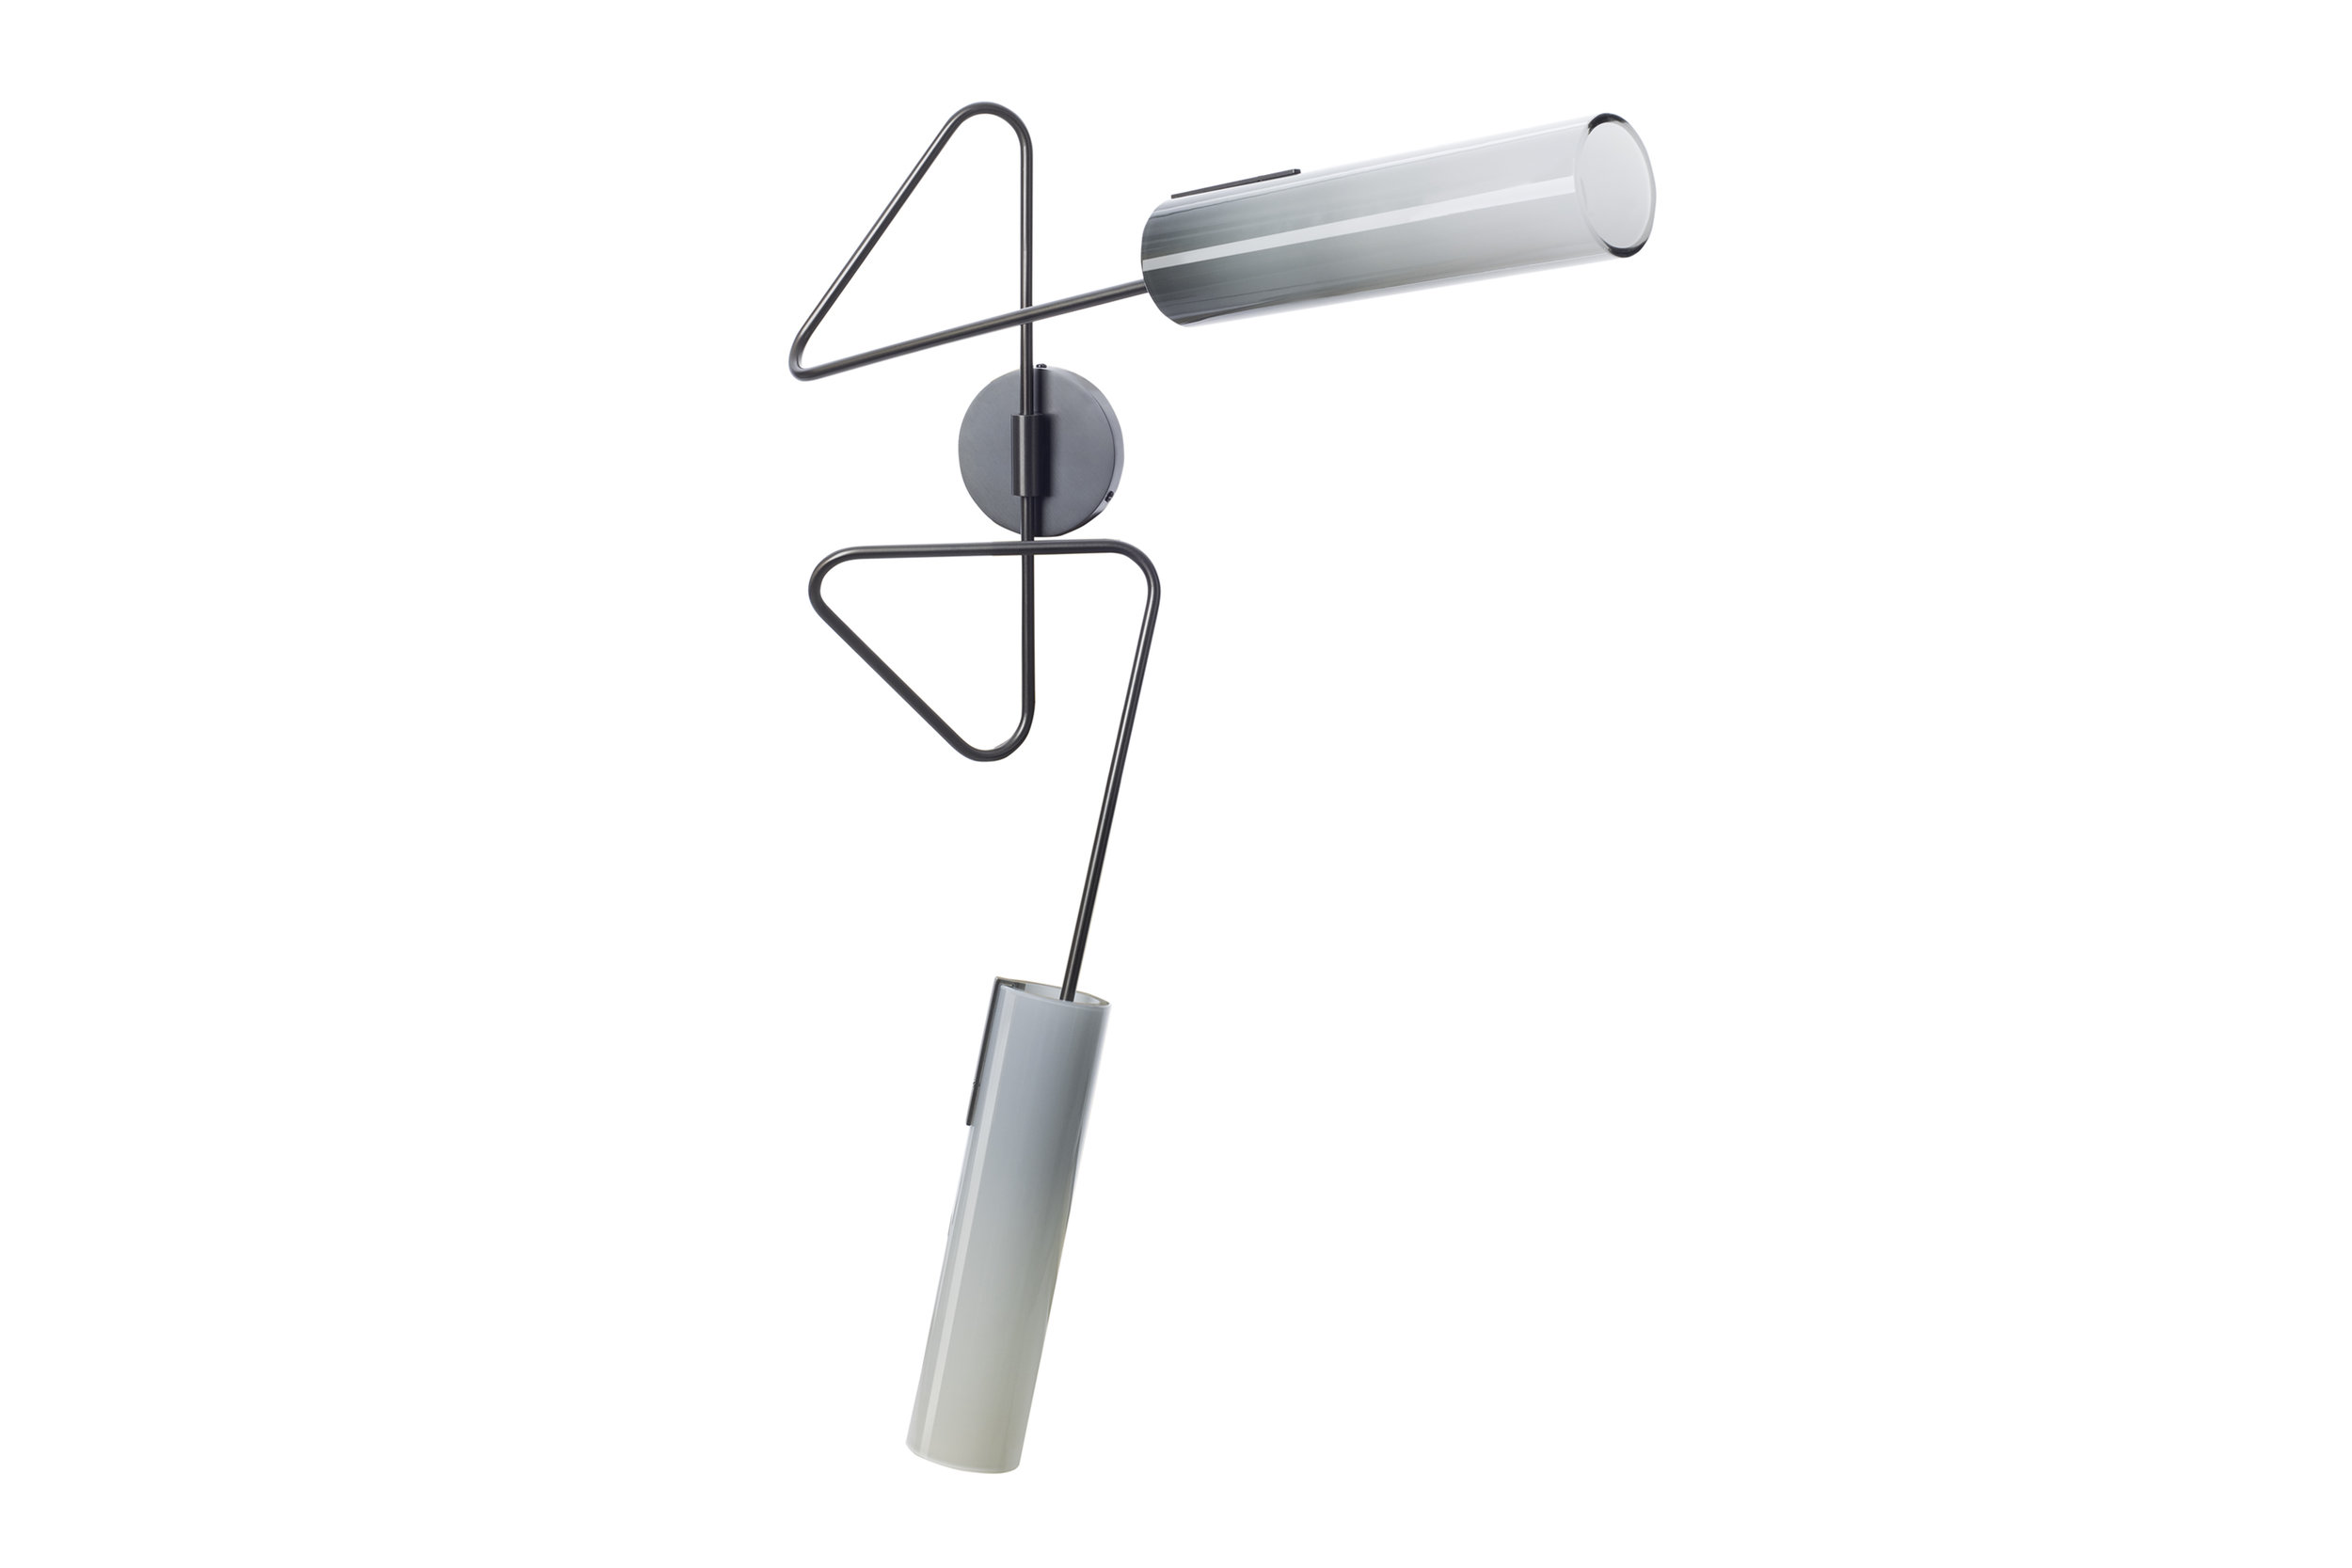 Avram_Rusu_Continuum_Sconce_Model_4_6.jpg